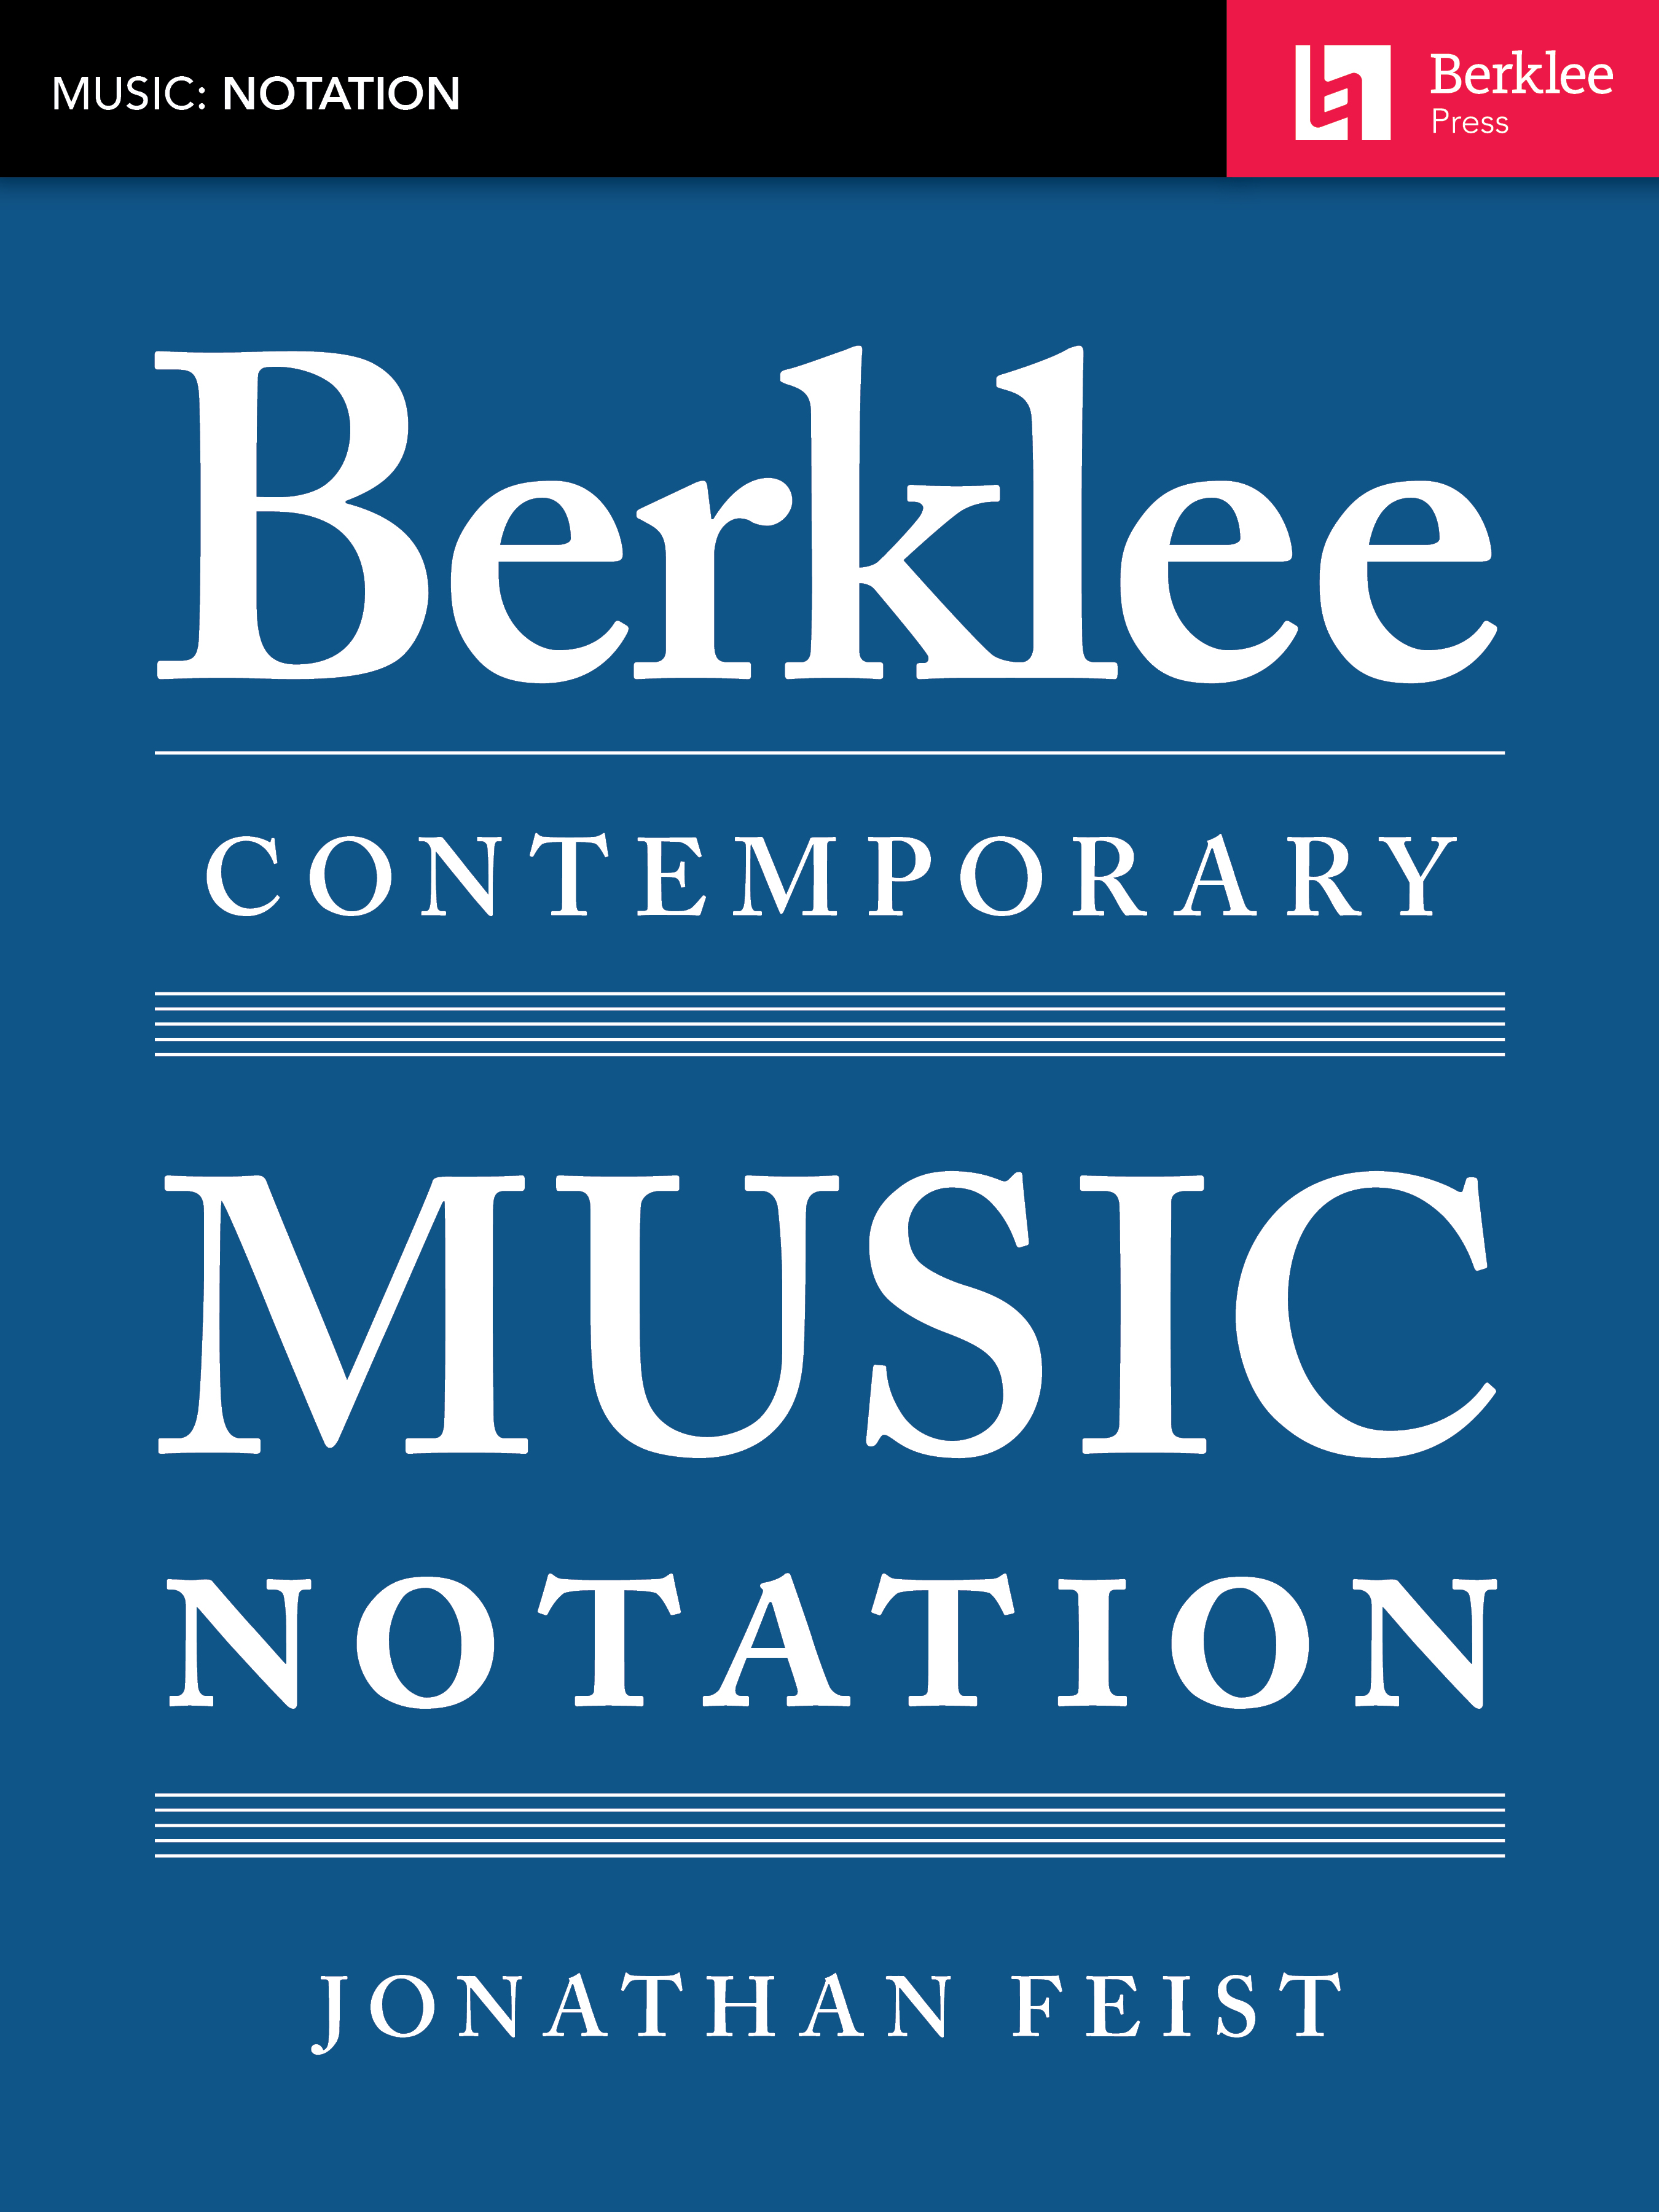 Theory and Ear Training - Berklee Press